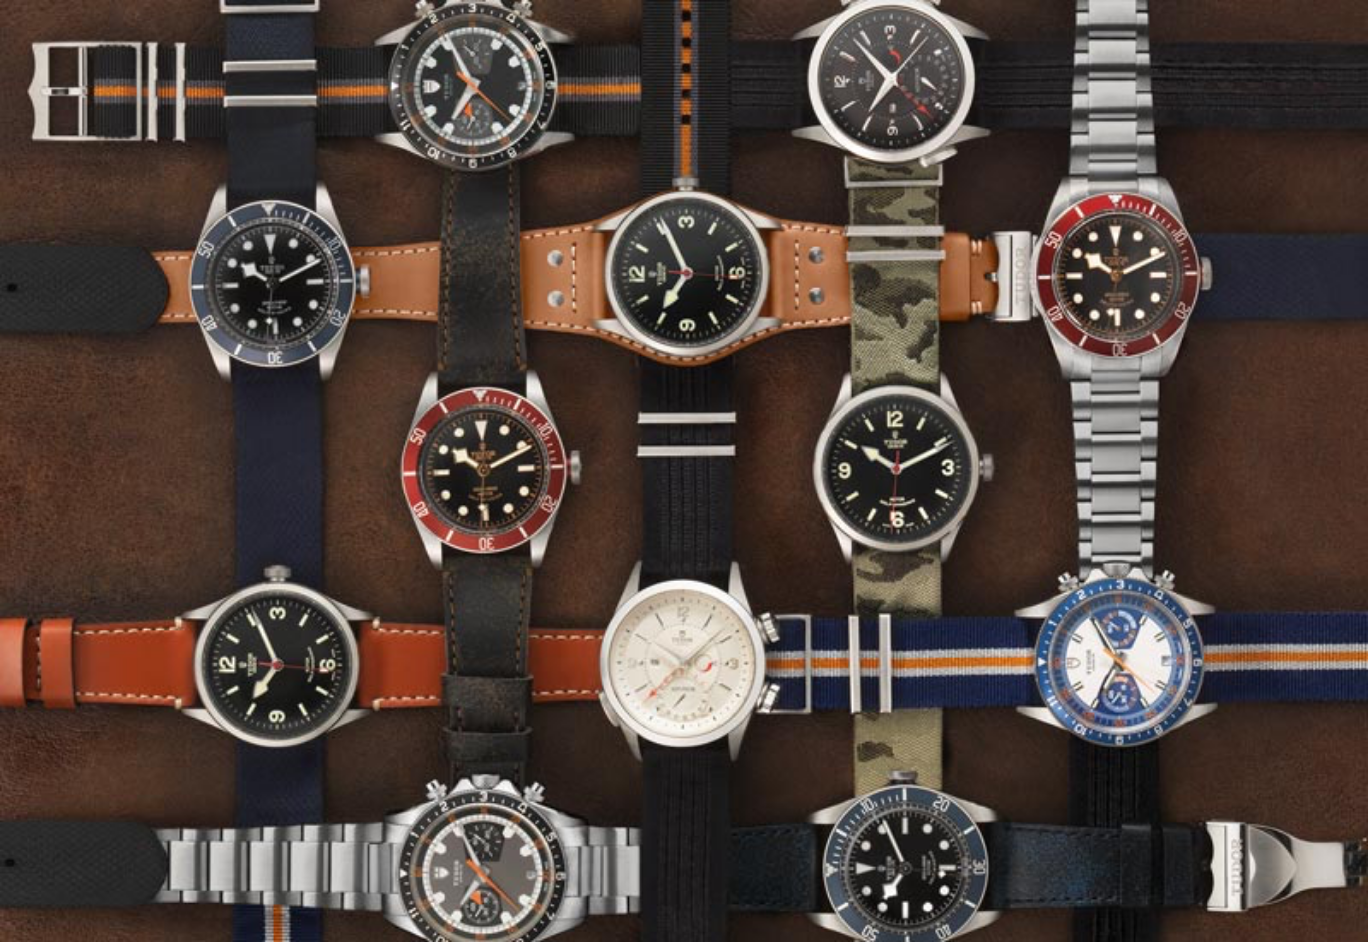 Buying A. luxury Watch - Image